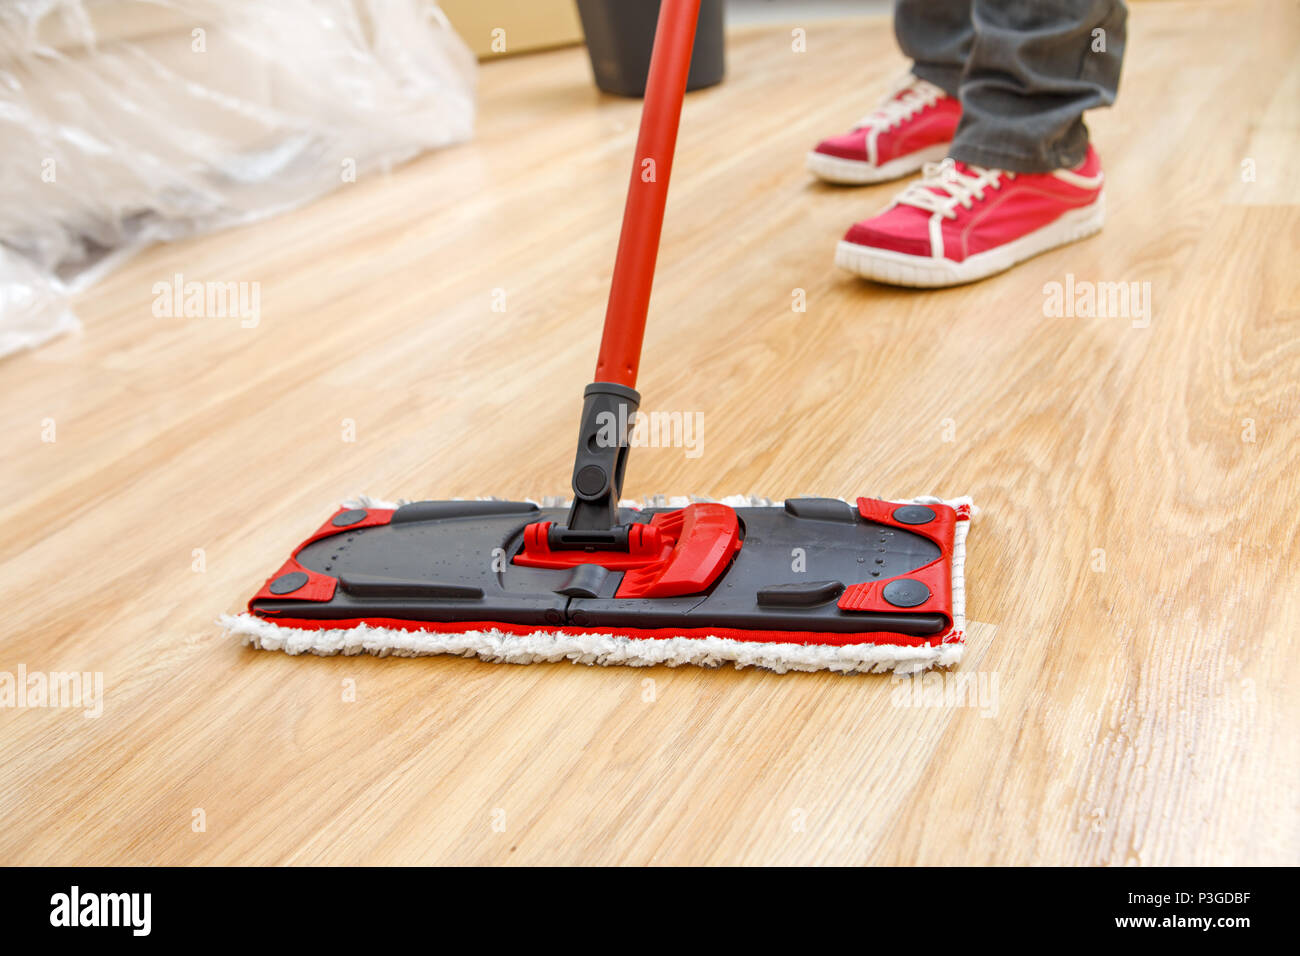 Photo of man's feet with mop washer floor - Stock Image